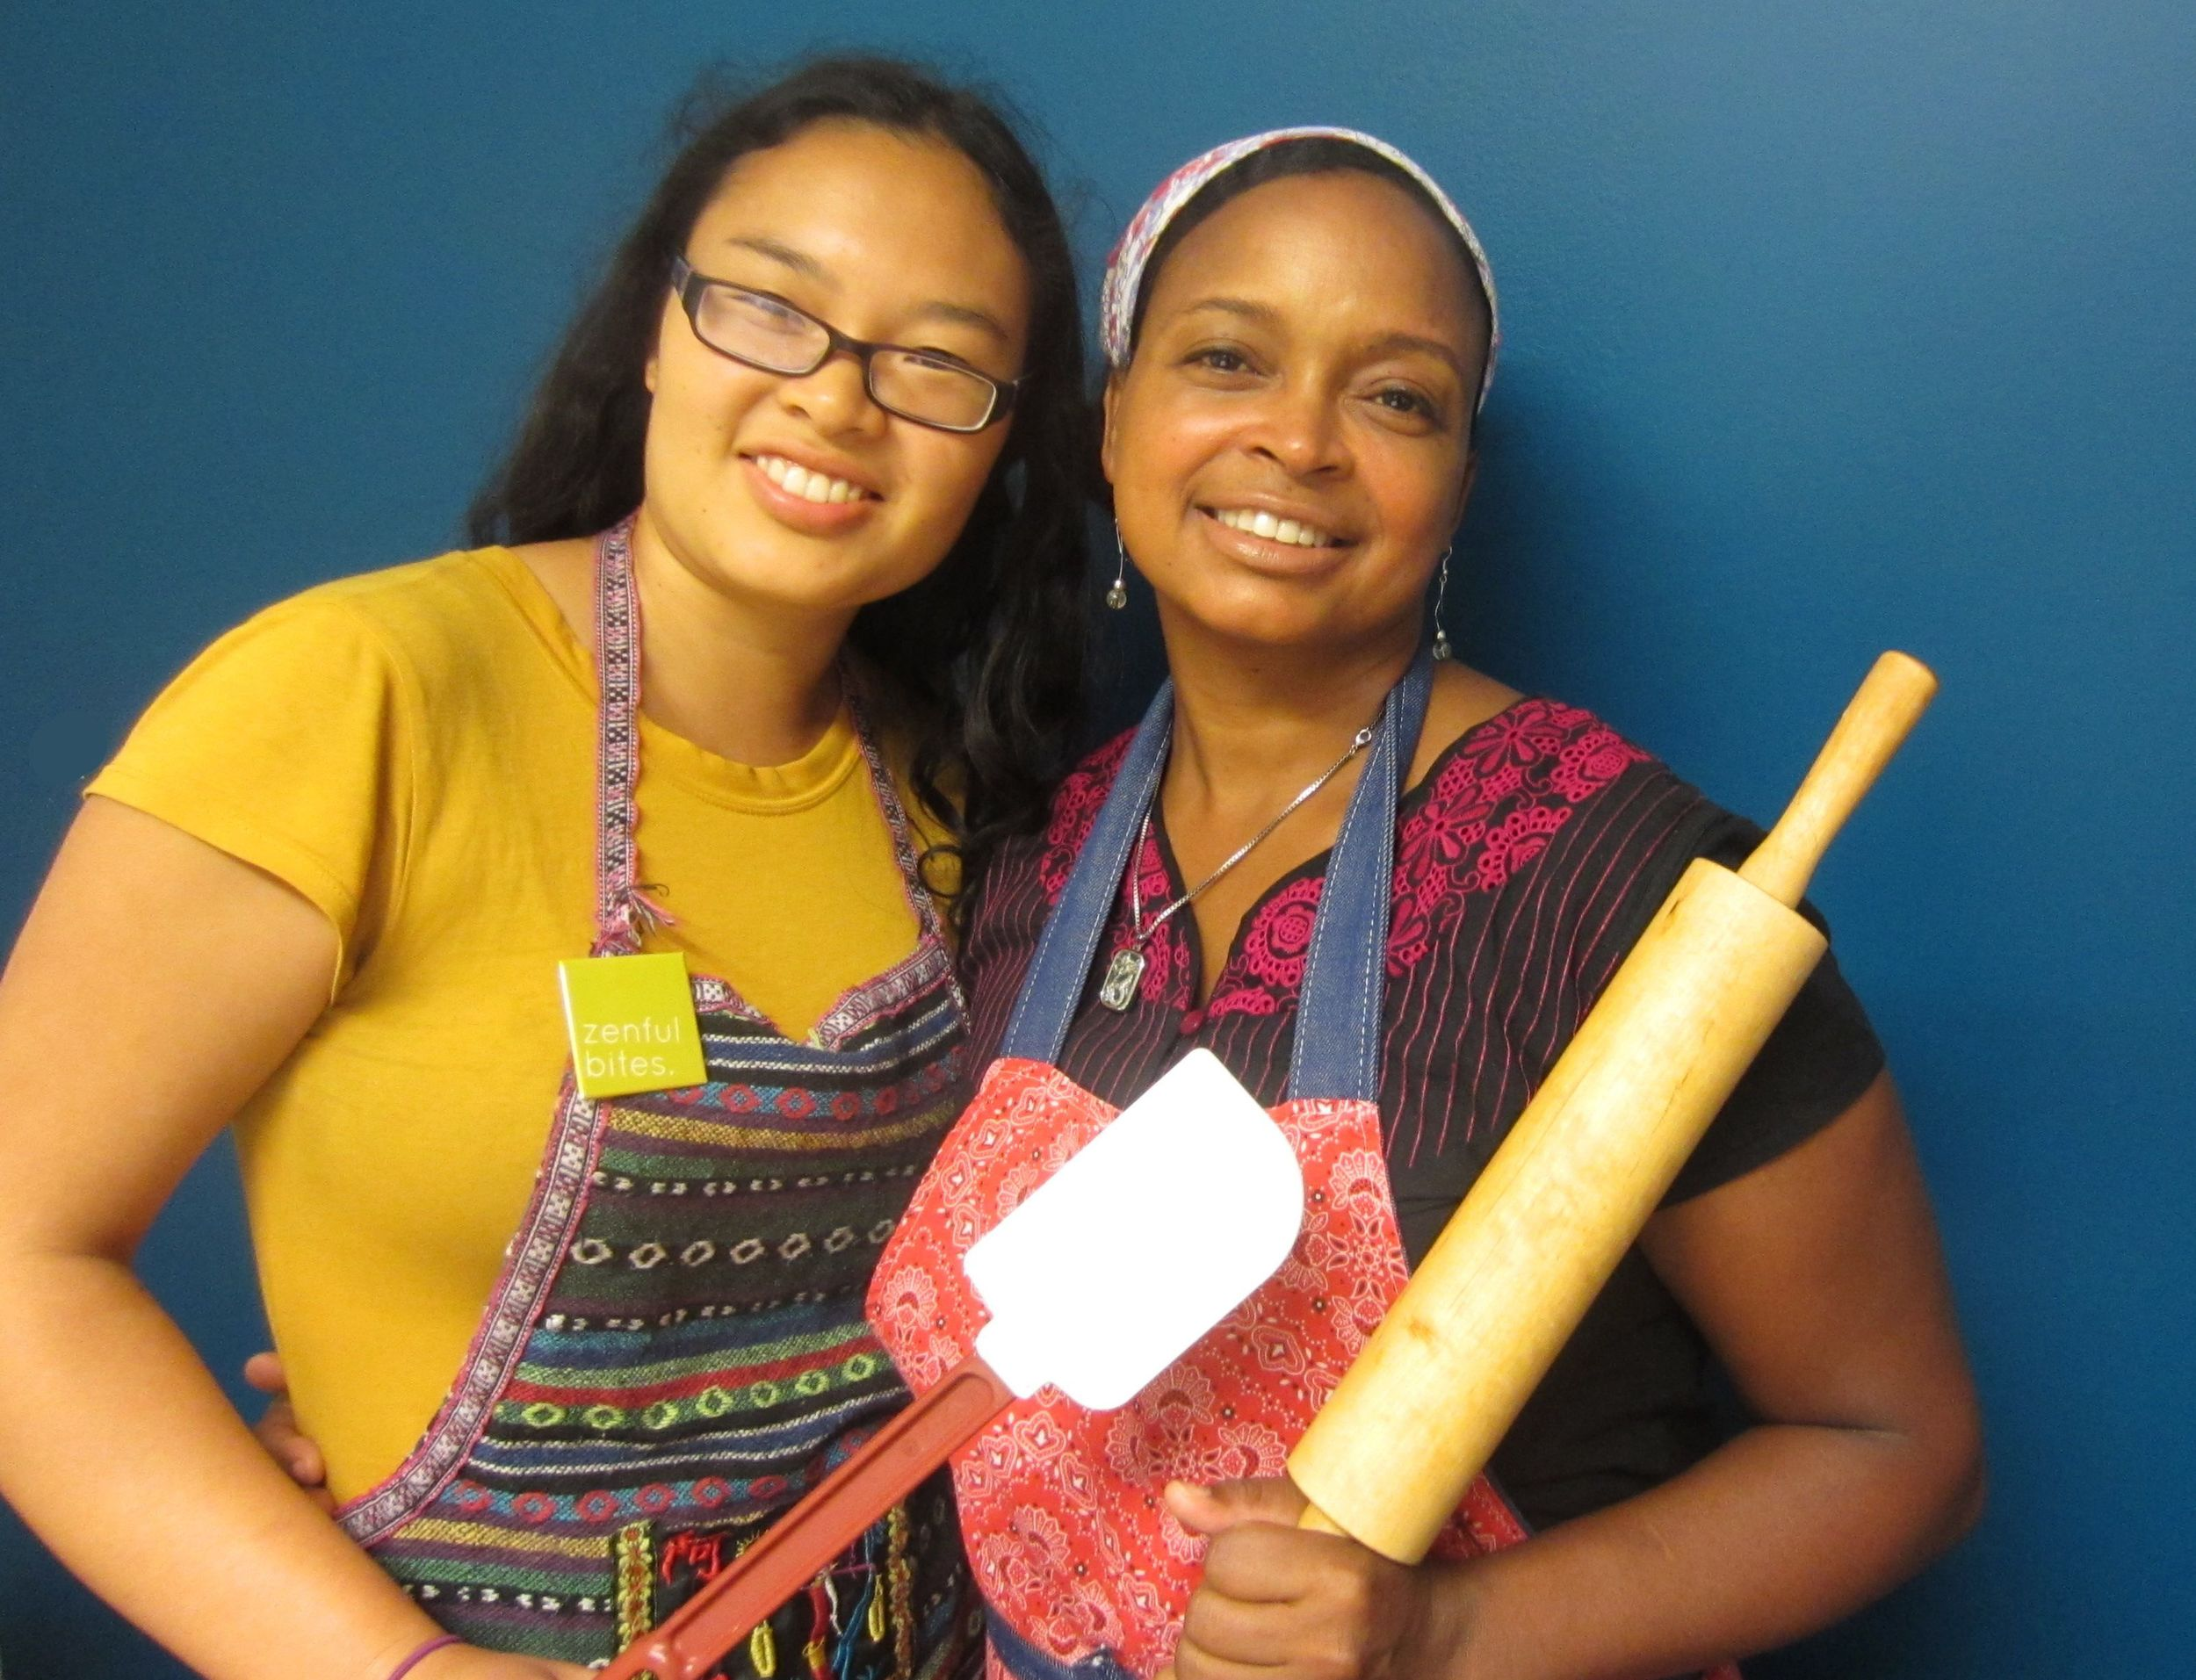 Co-founders Josephine Chu and Yolanda Hawthorne